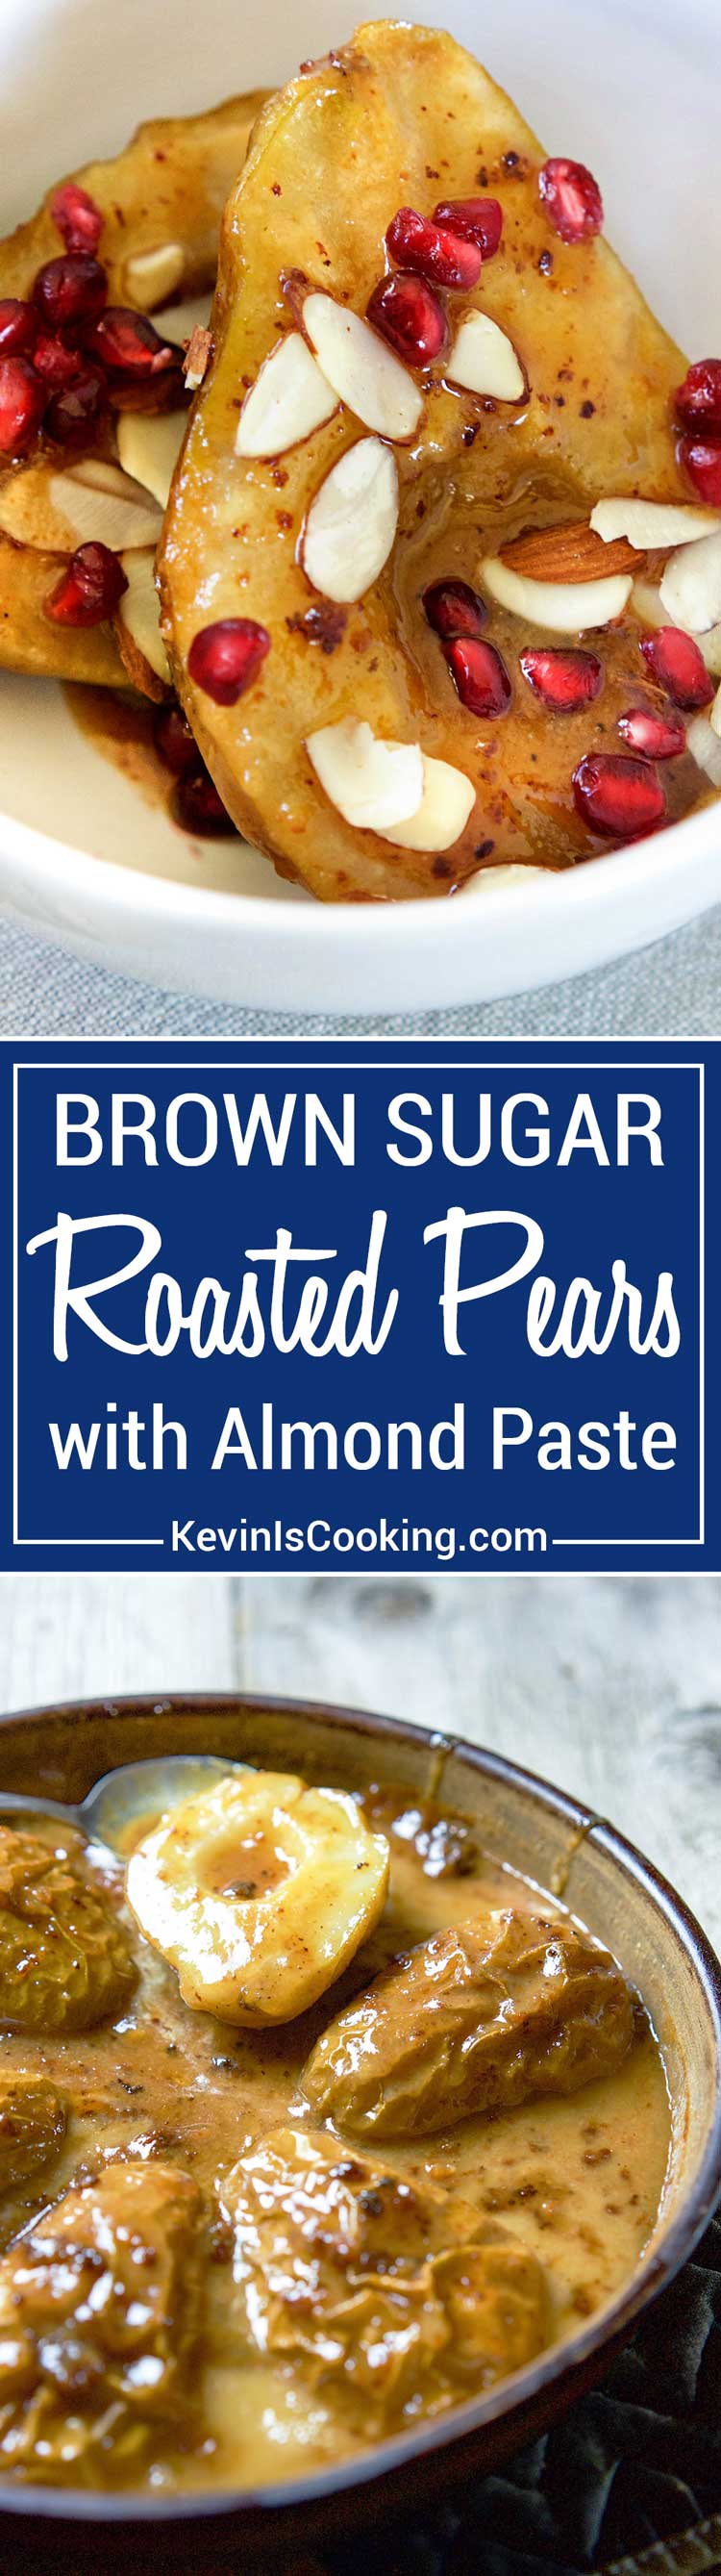 These Roasted Pears with Almond Paste are so easy to make and look impressive. Roasted with butter, brown sugar on a crumbling of almond paste these pears are amazing. Sure to impress!